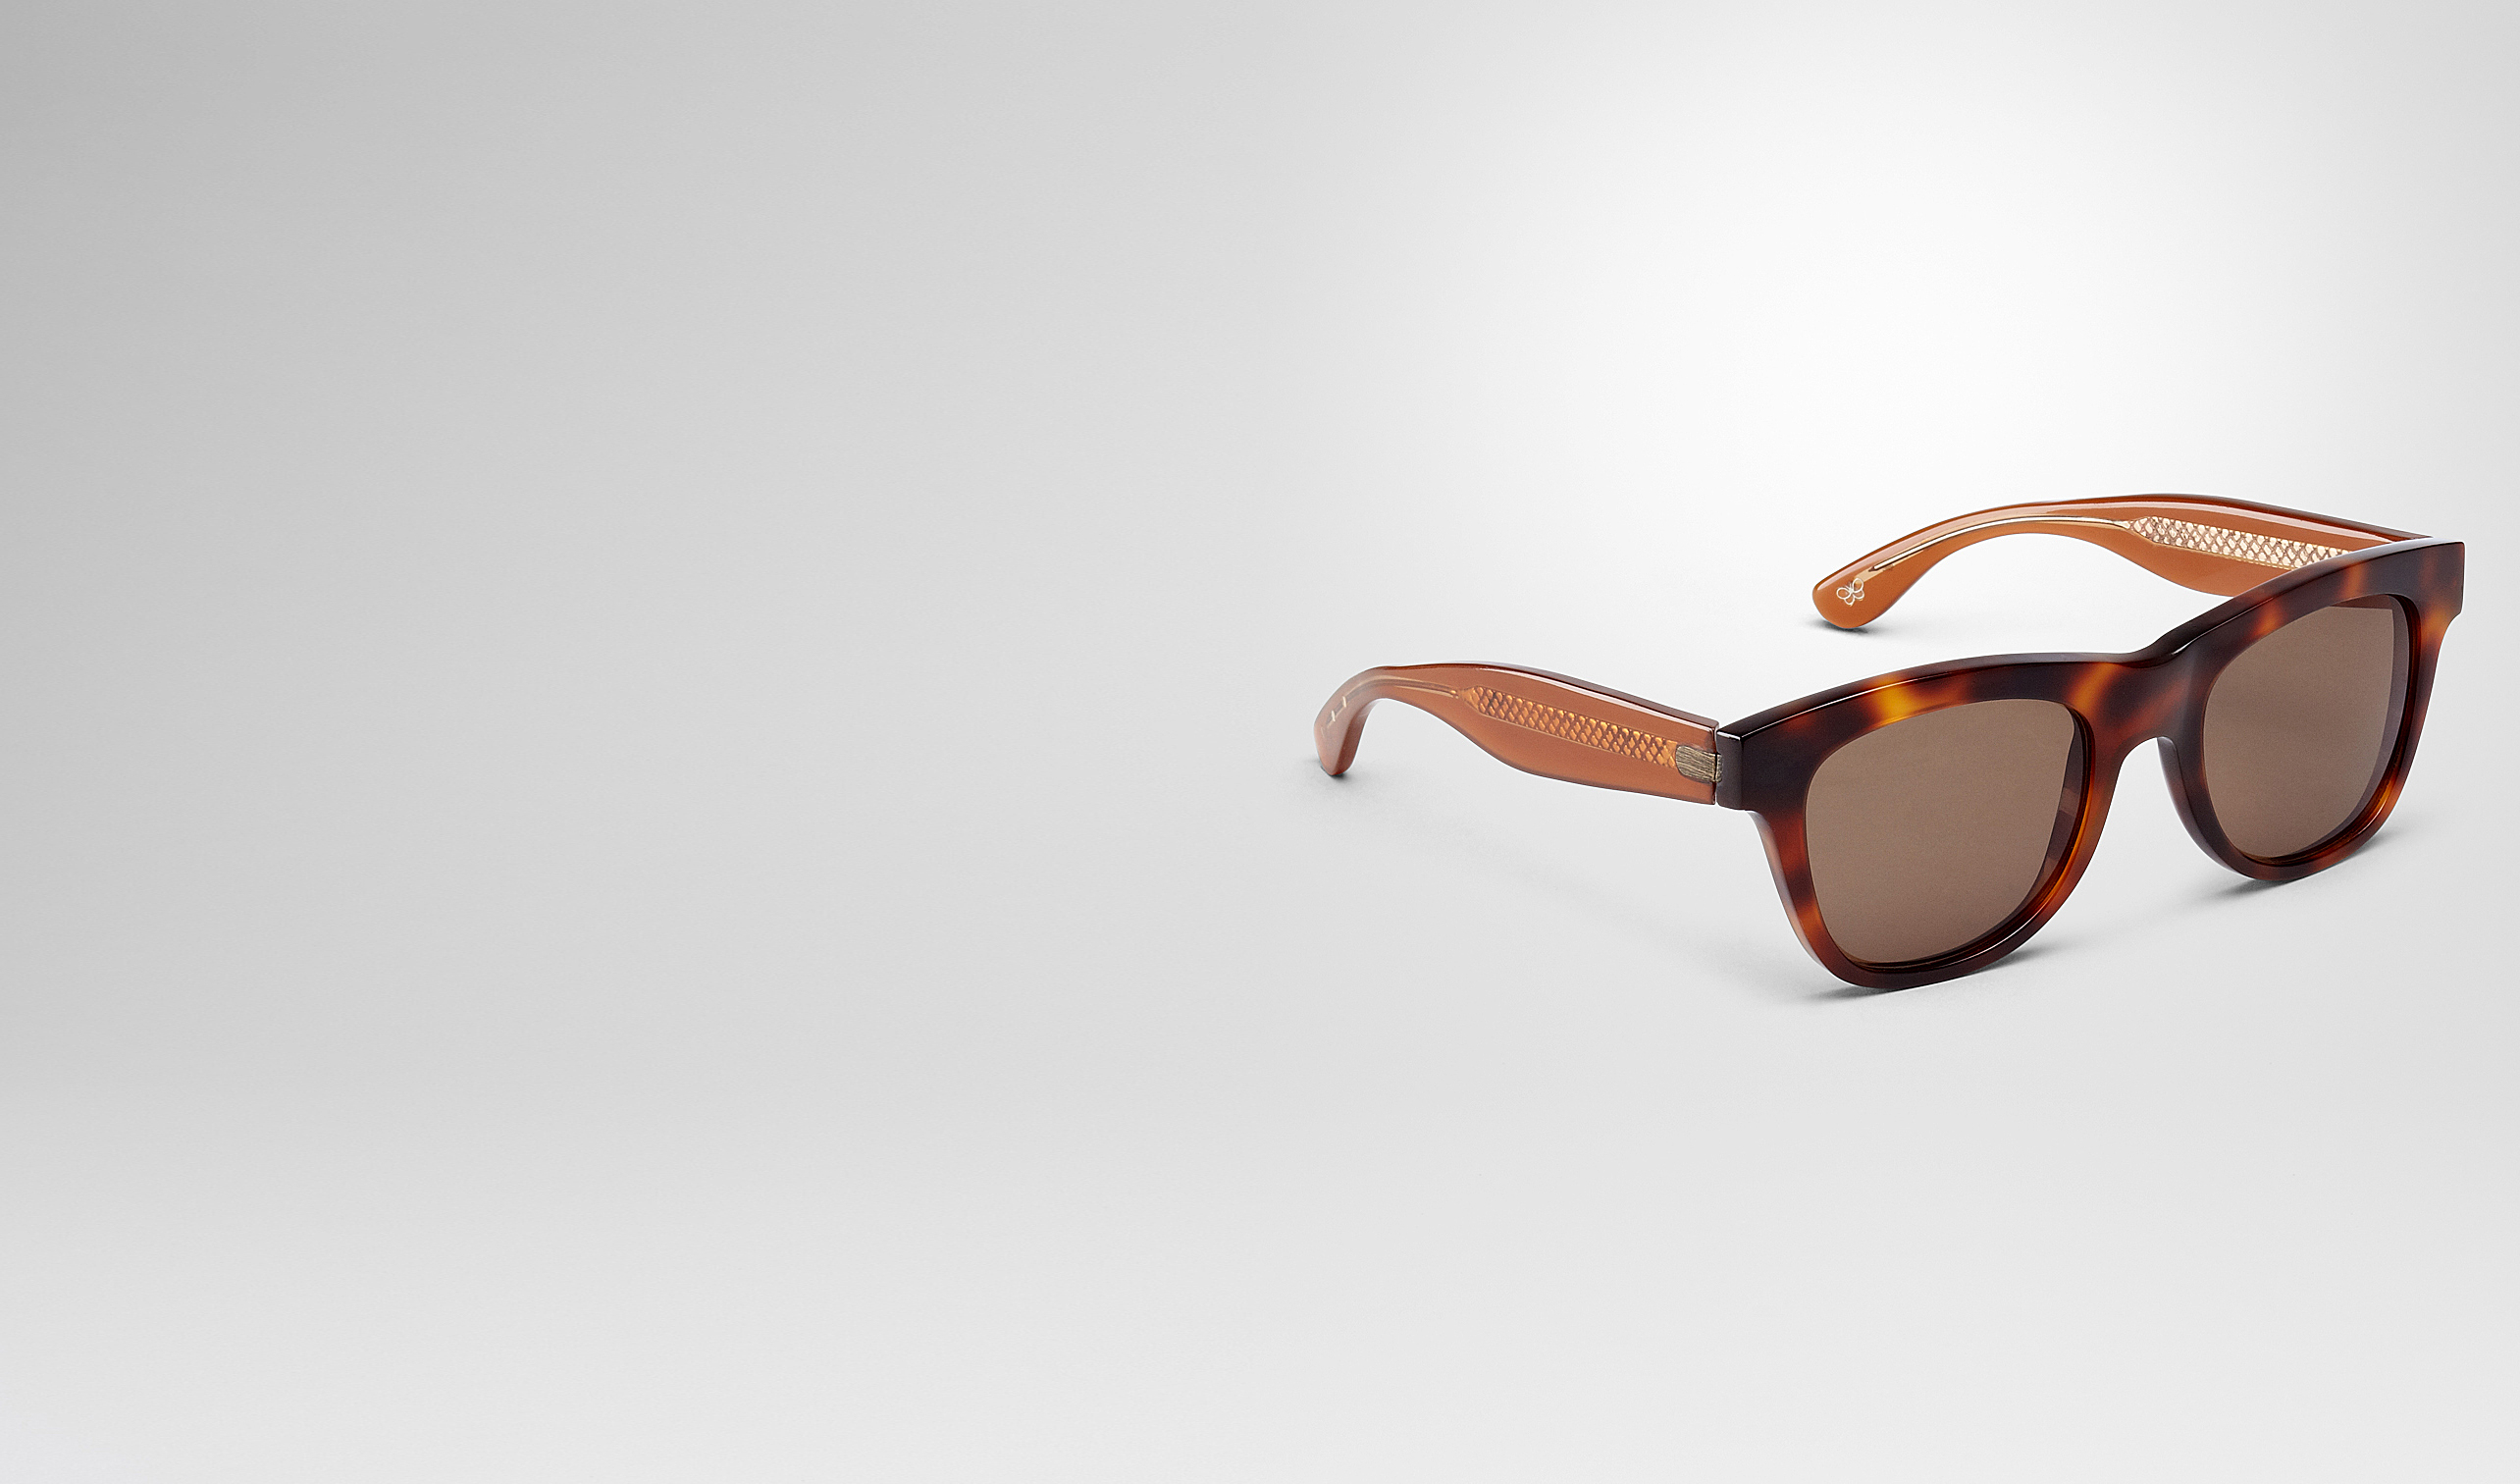 BOTTEGA VENETA Sunglasses E Havana Brown Acetate Eyewear BV 248 pl